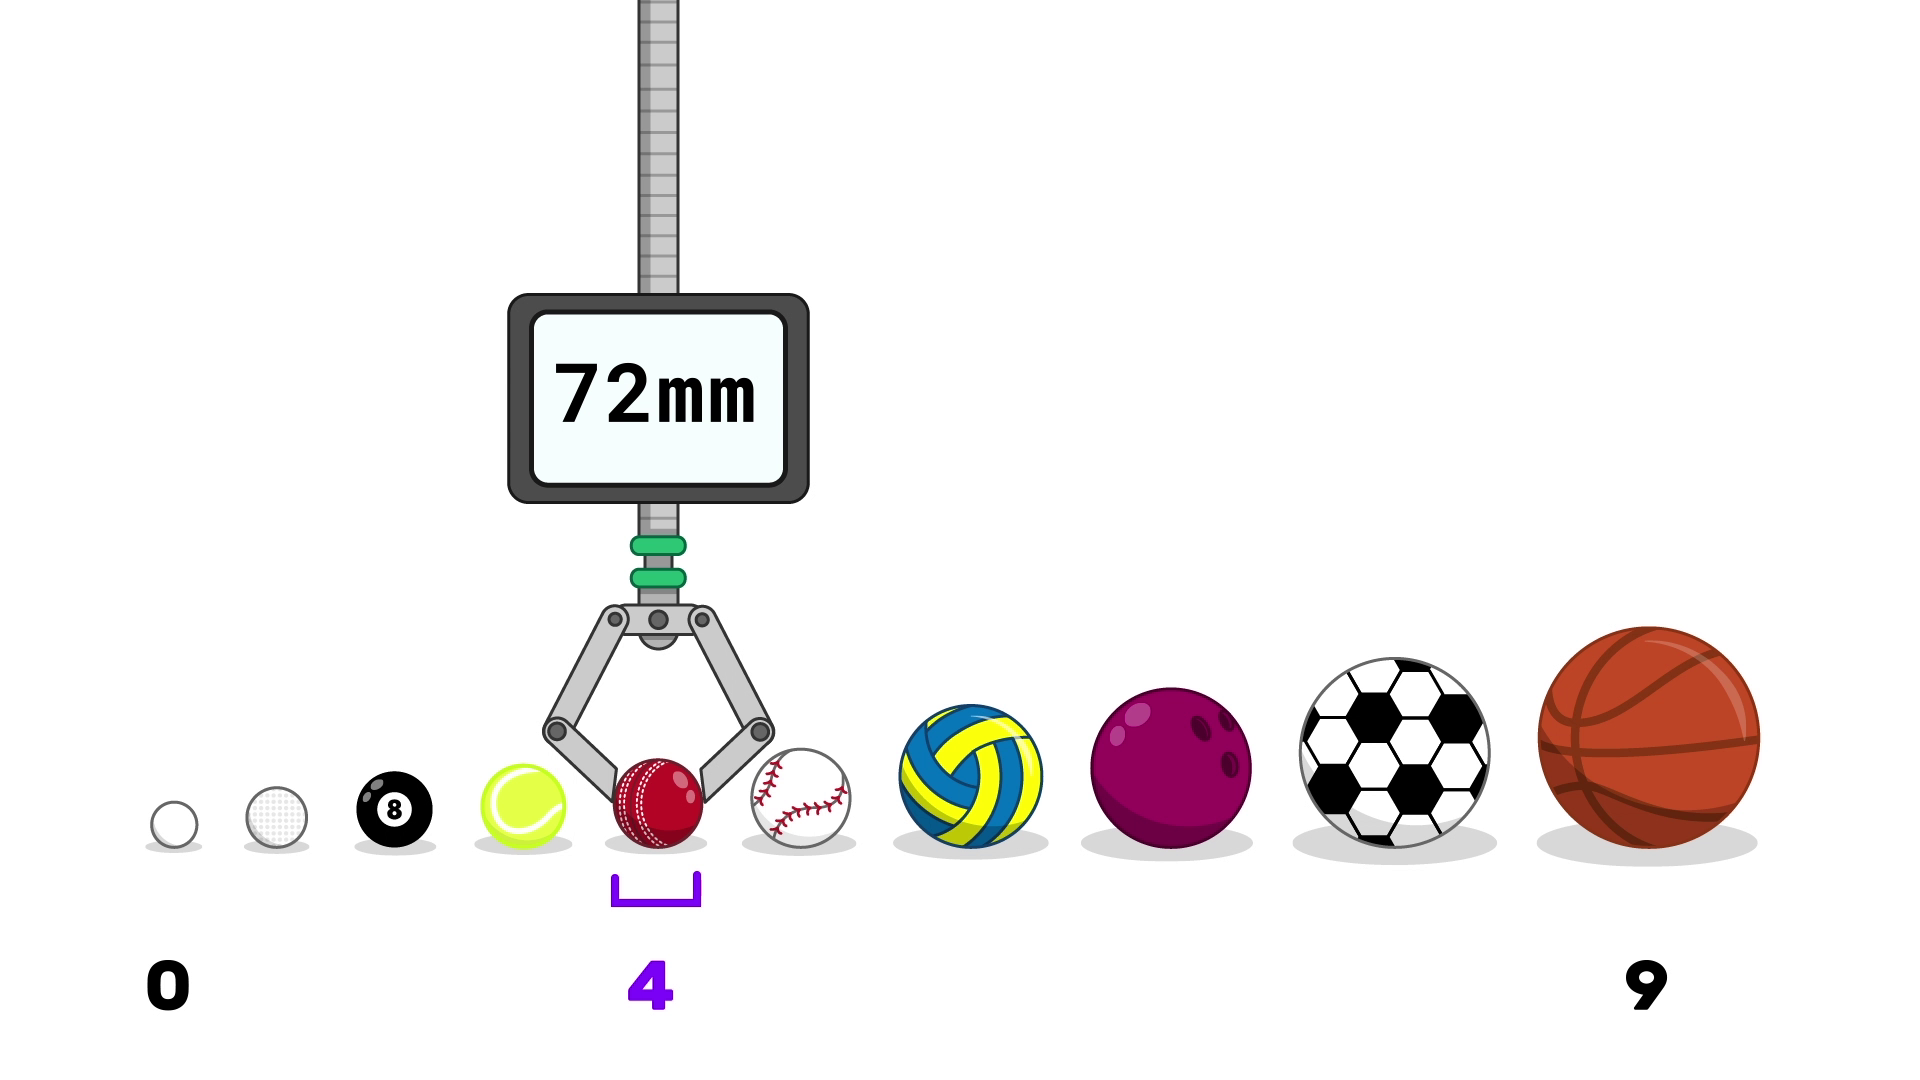 The shelf of 10 sorted balls above. The golf ball has a black number zero underneath it, and the basketball has a black number nine beneath it. There is a purple number 4 underneath the cricket ball. The robotic claw is measuring the width of the cricket ball, and is displaying 72mm.